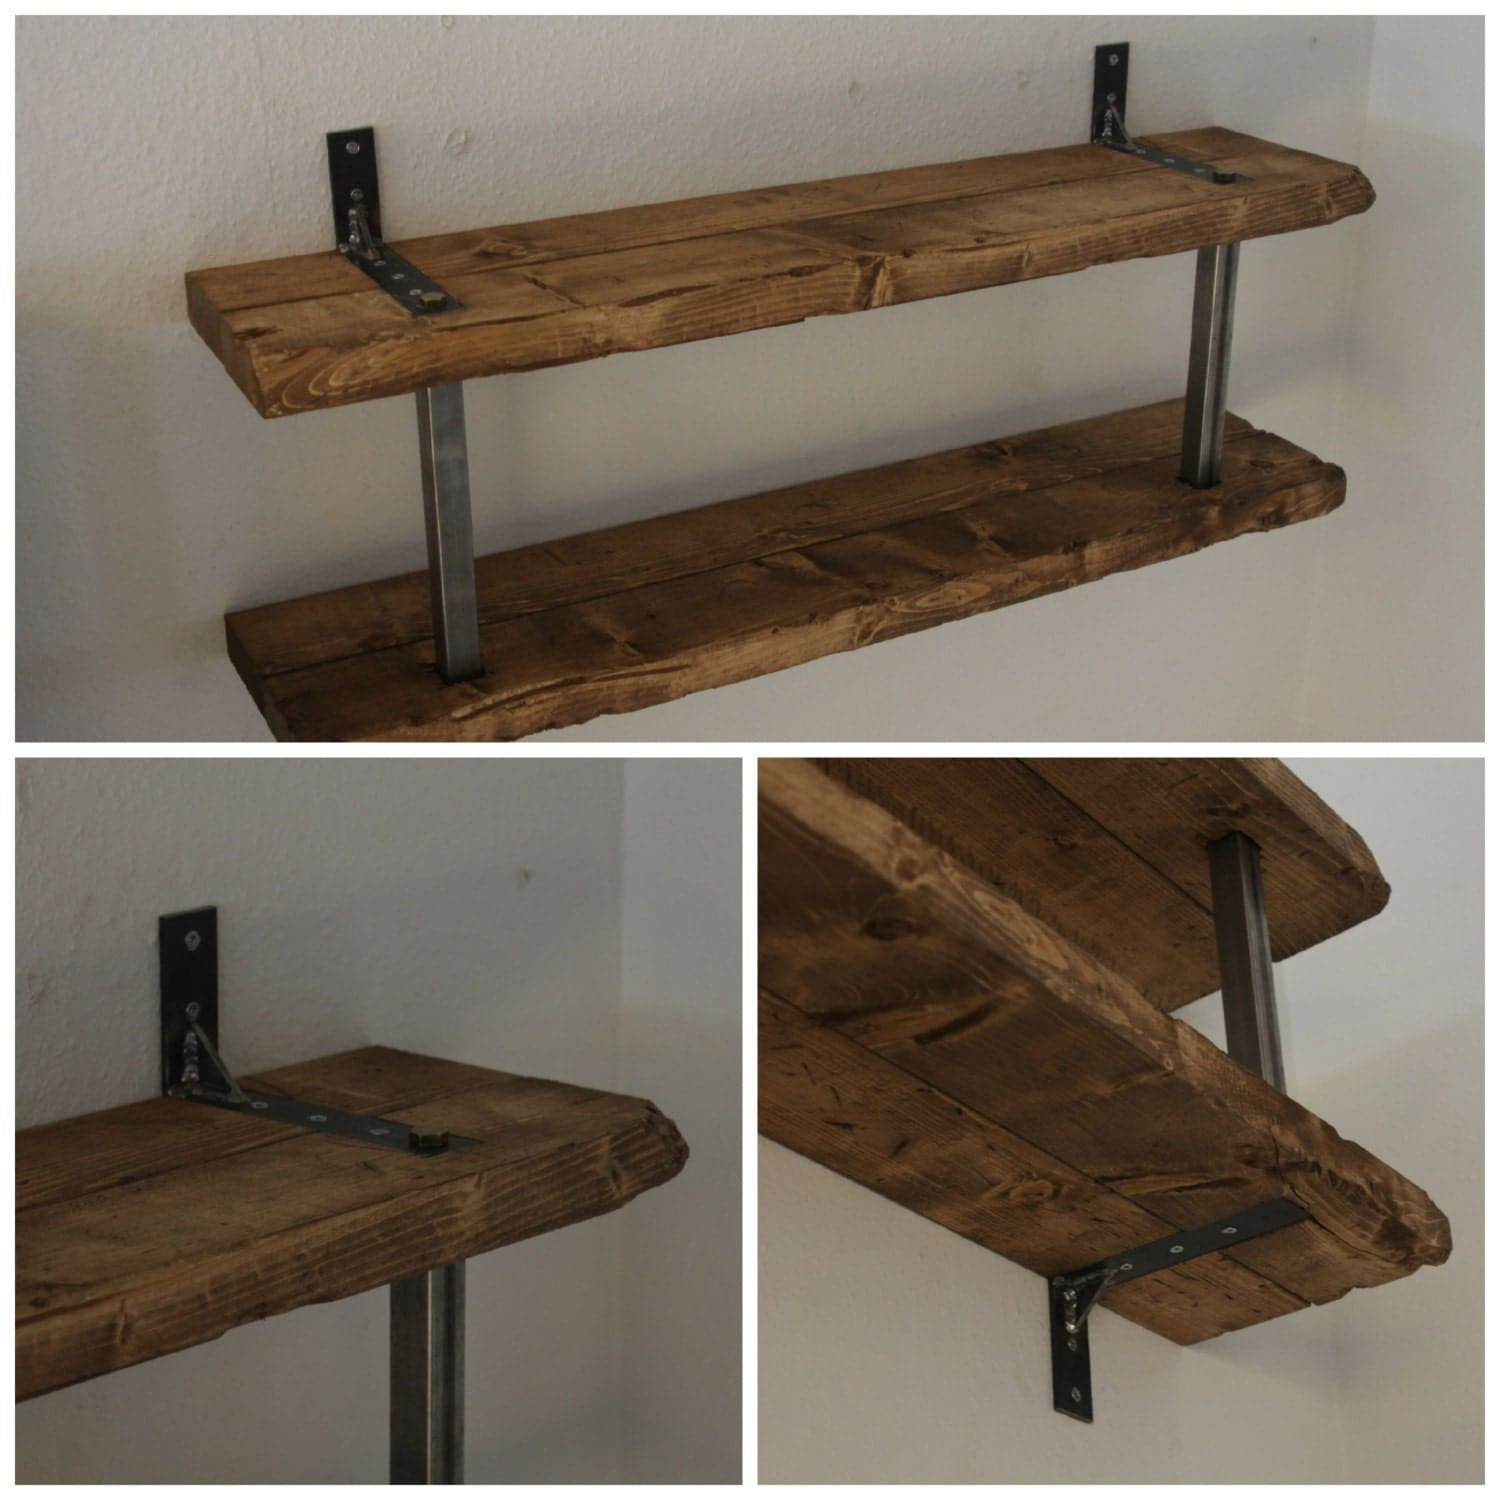 Rustic Wood Shelves With Steel Brackets By 95NorthDesigns